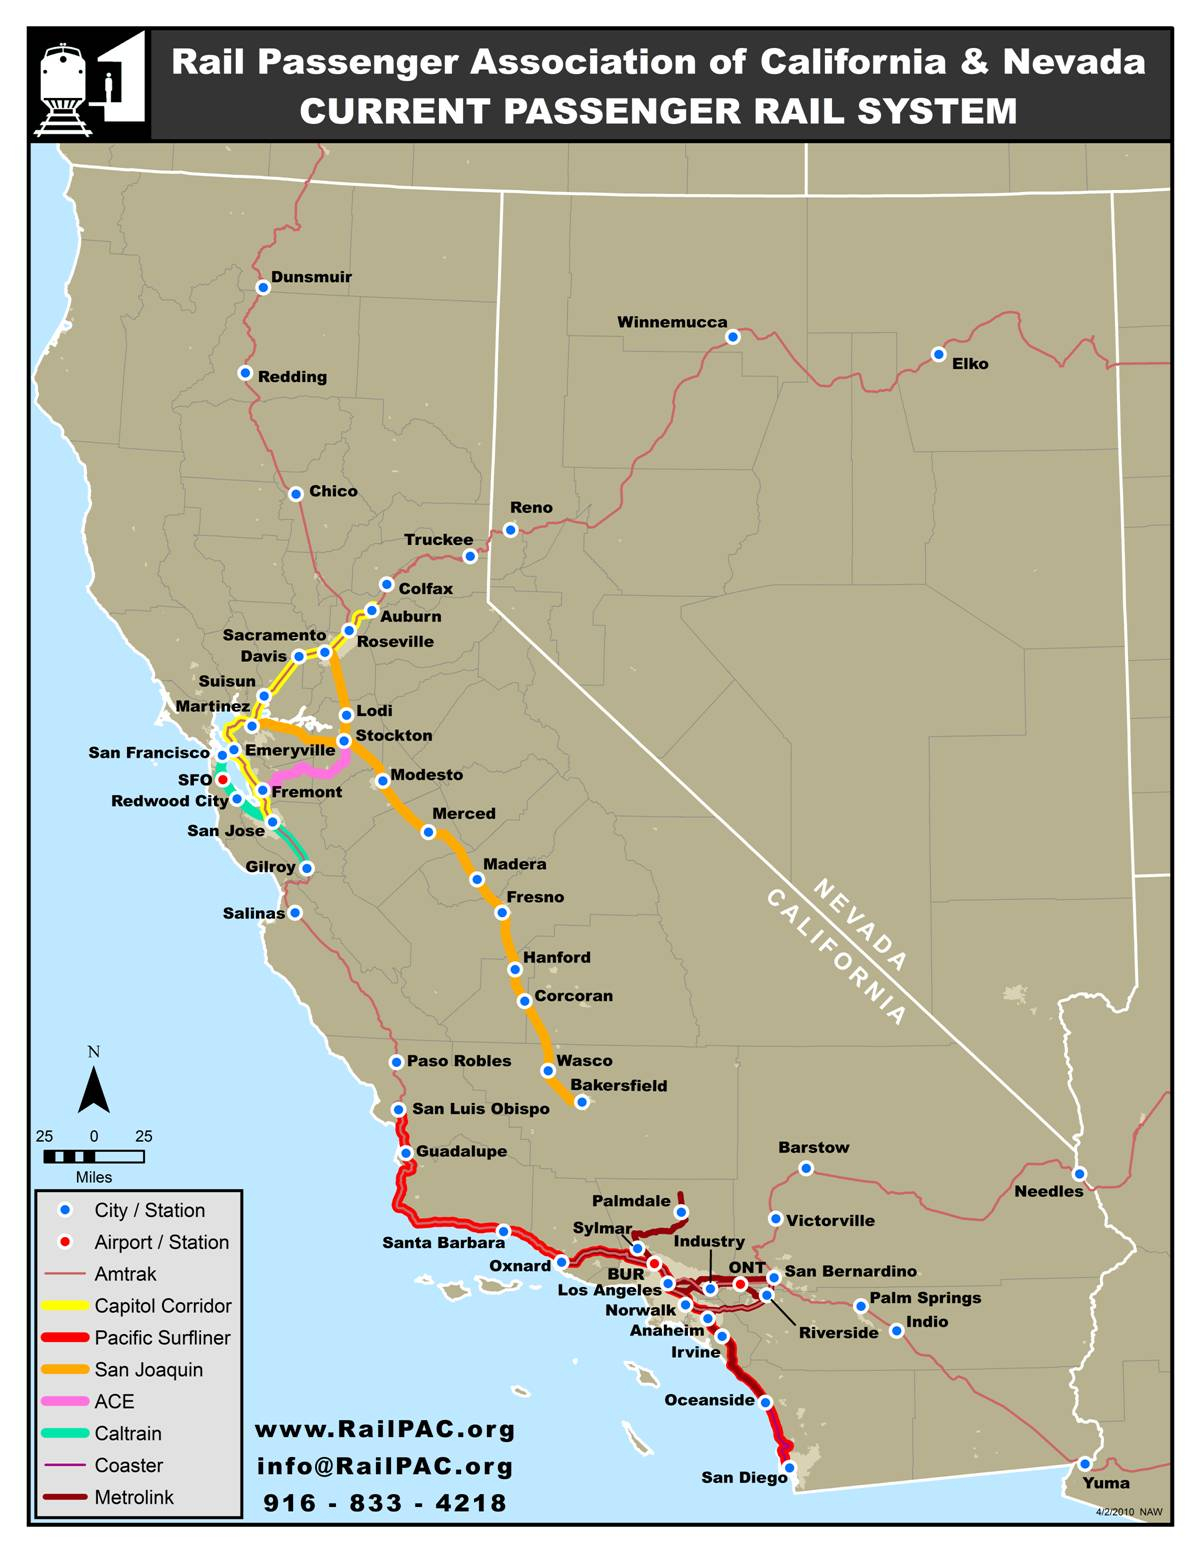 Issues California River Map Amtrak Southern California Map - Amtrak Train Map California